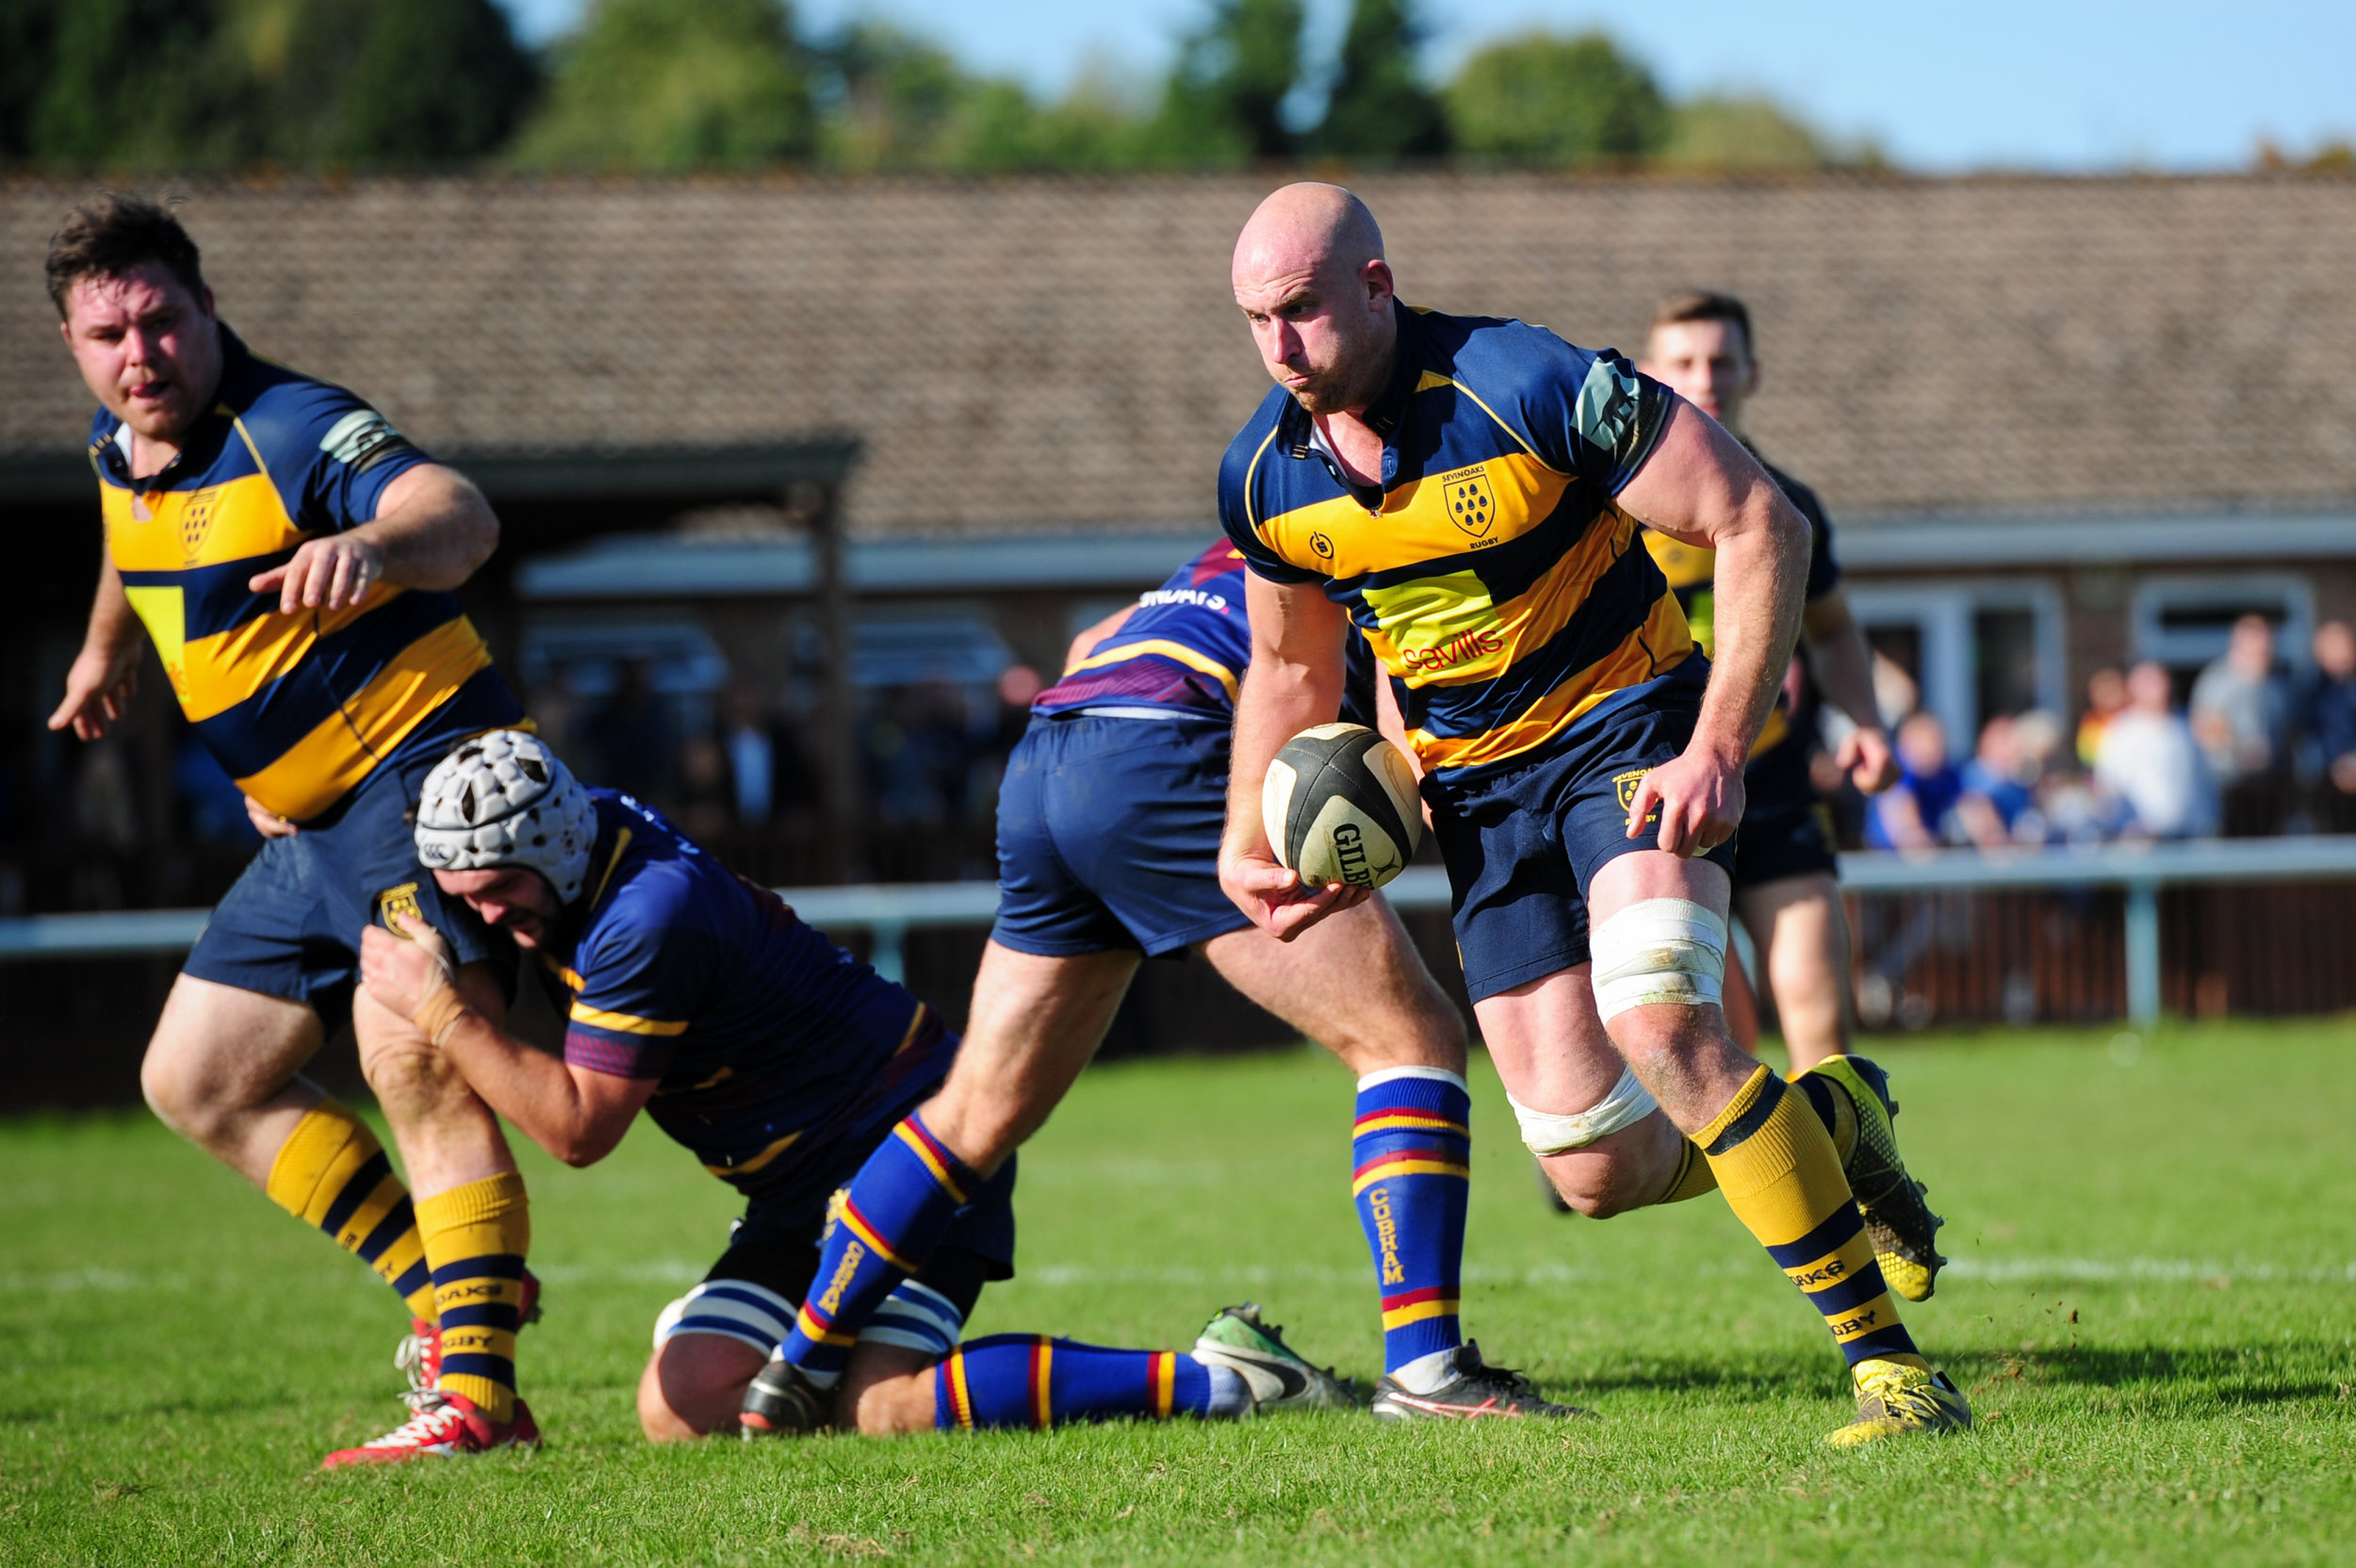 Oaks Skipper Stu Coleman on the charge against Cobham RFC earlier this season at a sunny and packed Paddock.  Photo Credit: David Purday